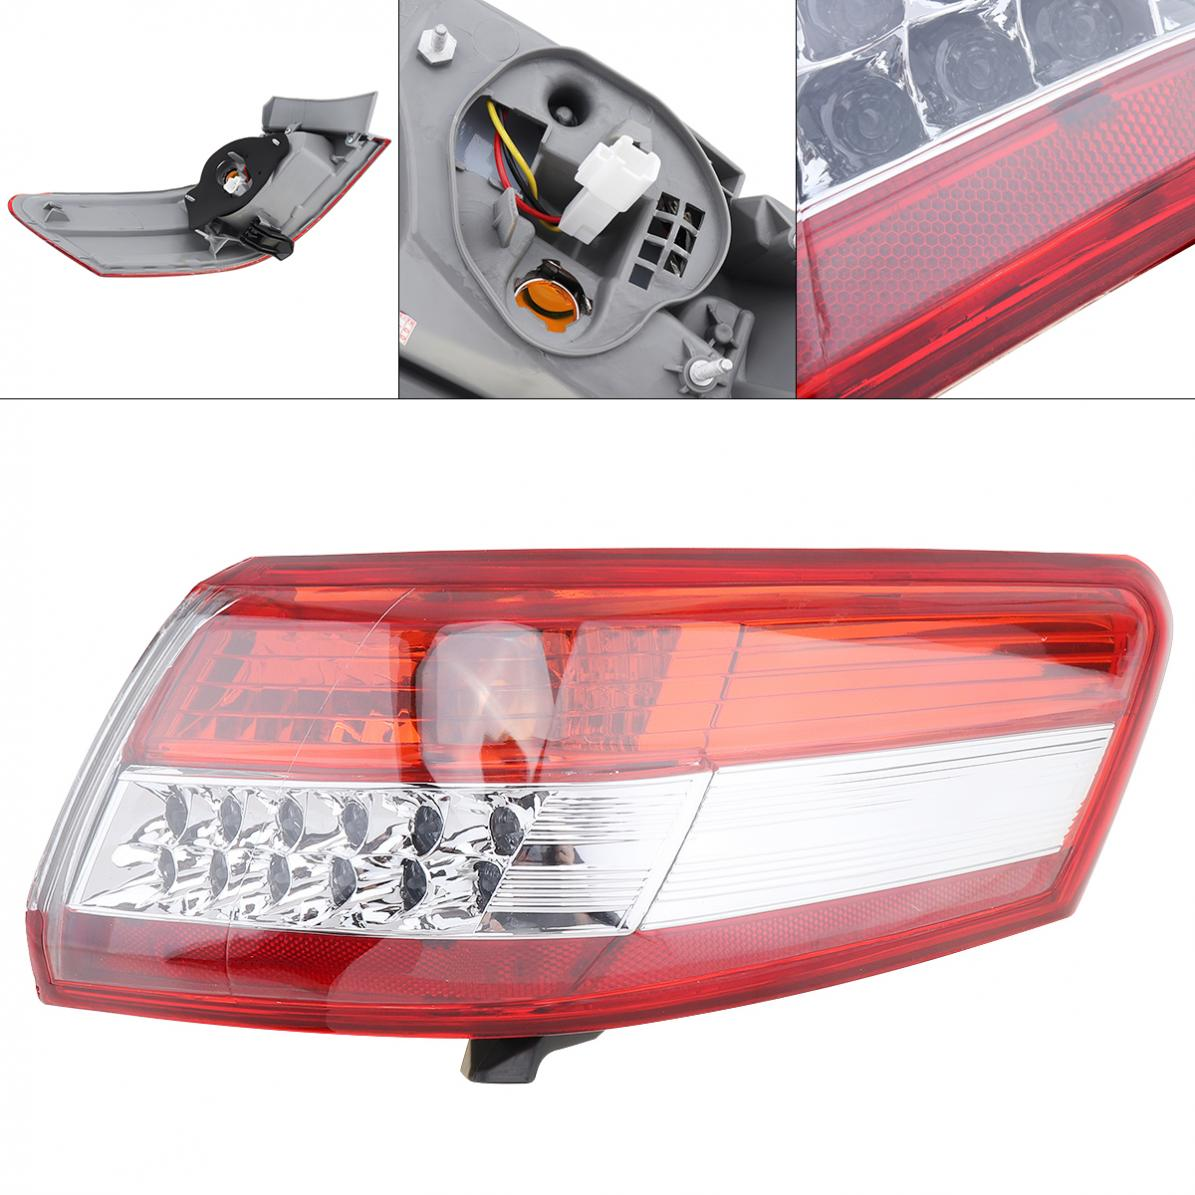 Waterproof Durable Car  Left Side LH Tail Light for Toyota Sport Edition ACV40 Toyota Camry 2010 2011Waterproof Durable Car  Left Side LH Tail Light for Toyota Sport Edition ACV40 Toyota Camry 2010 2011